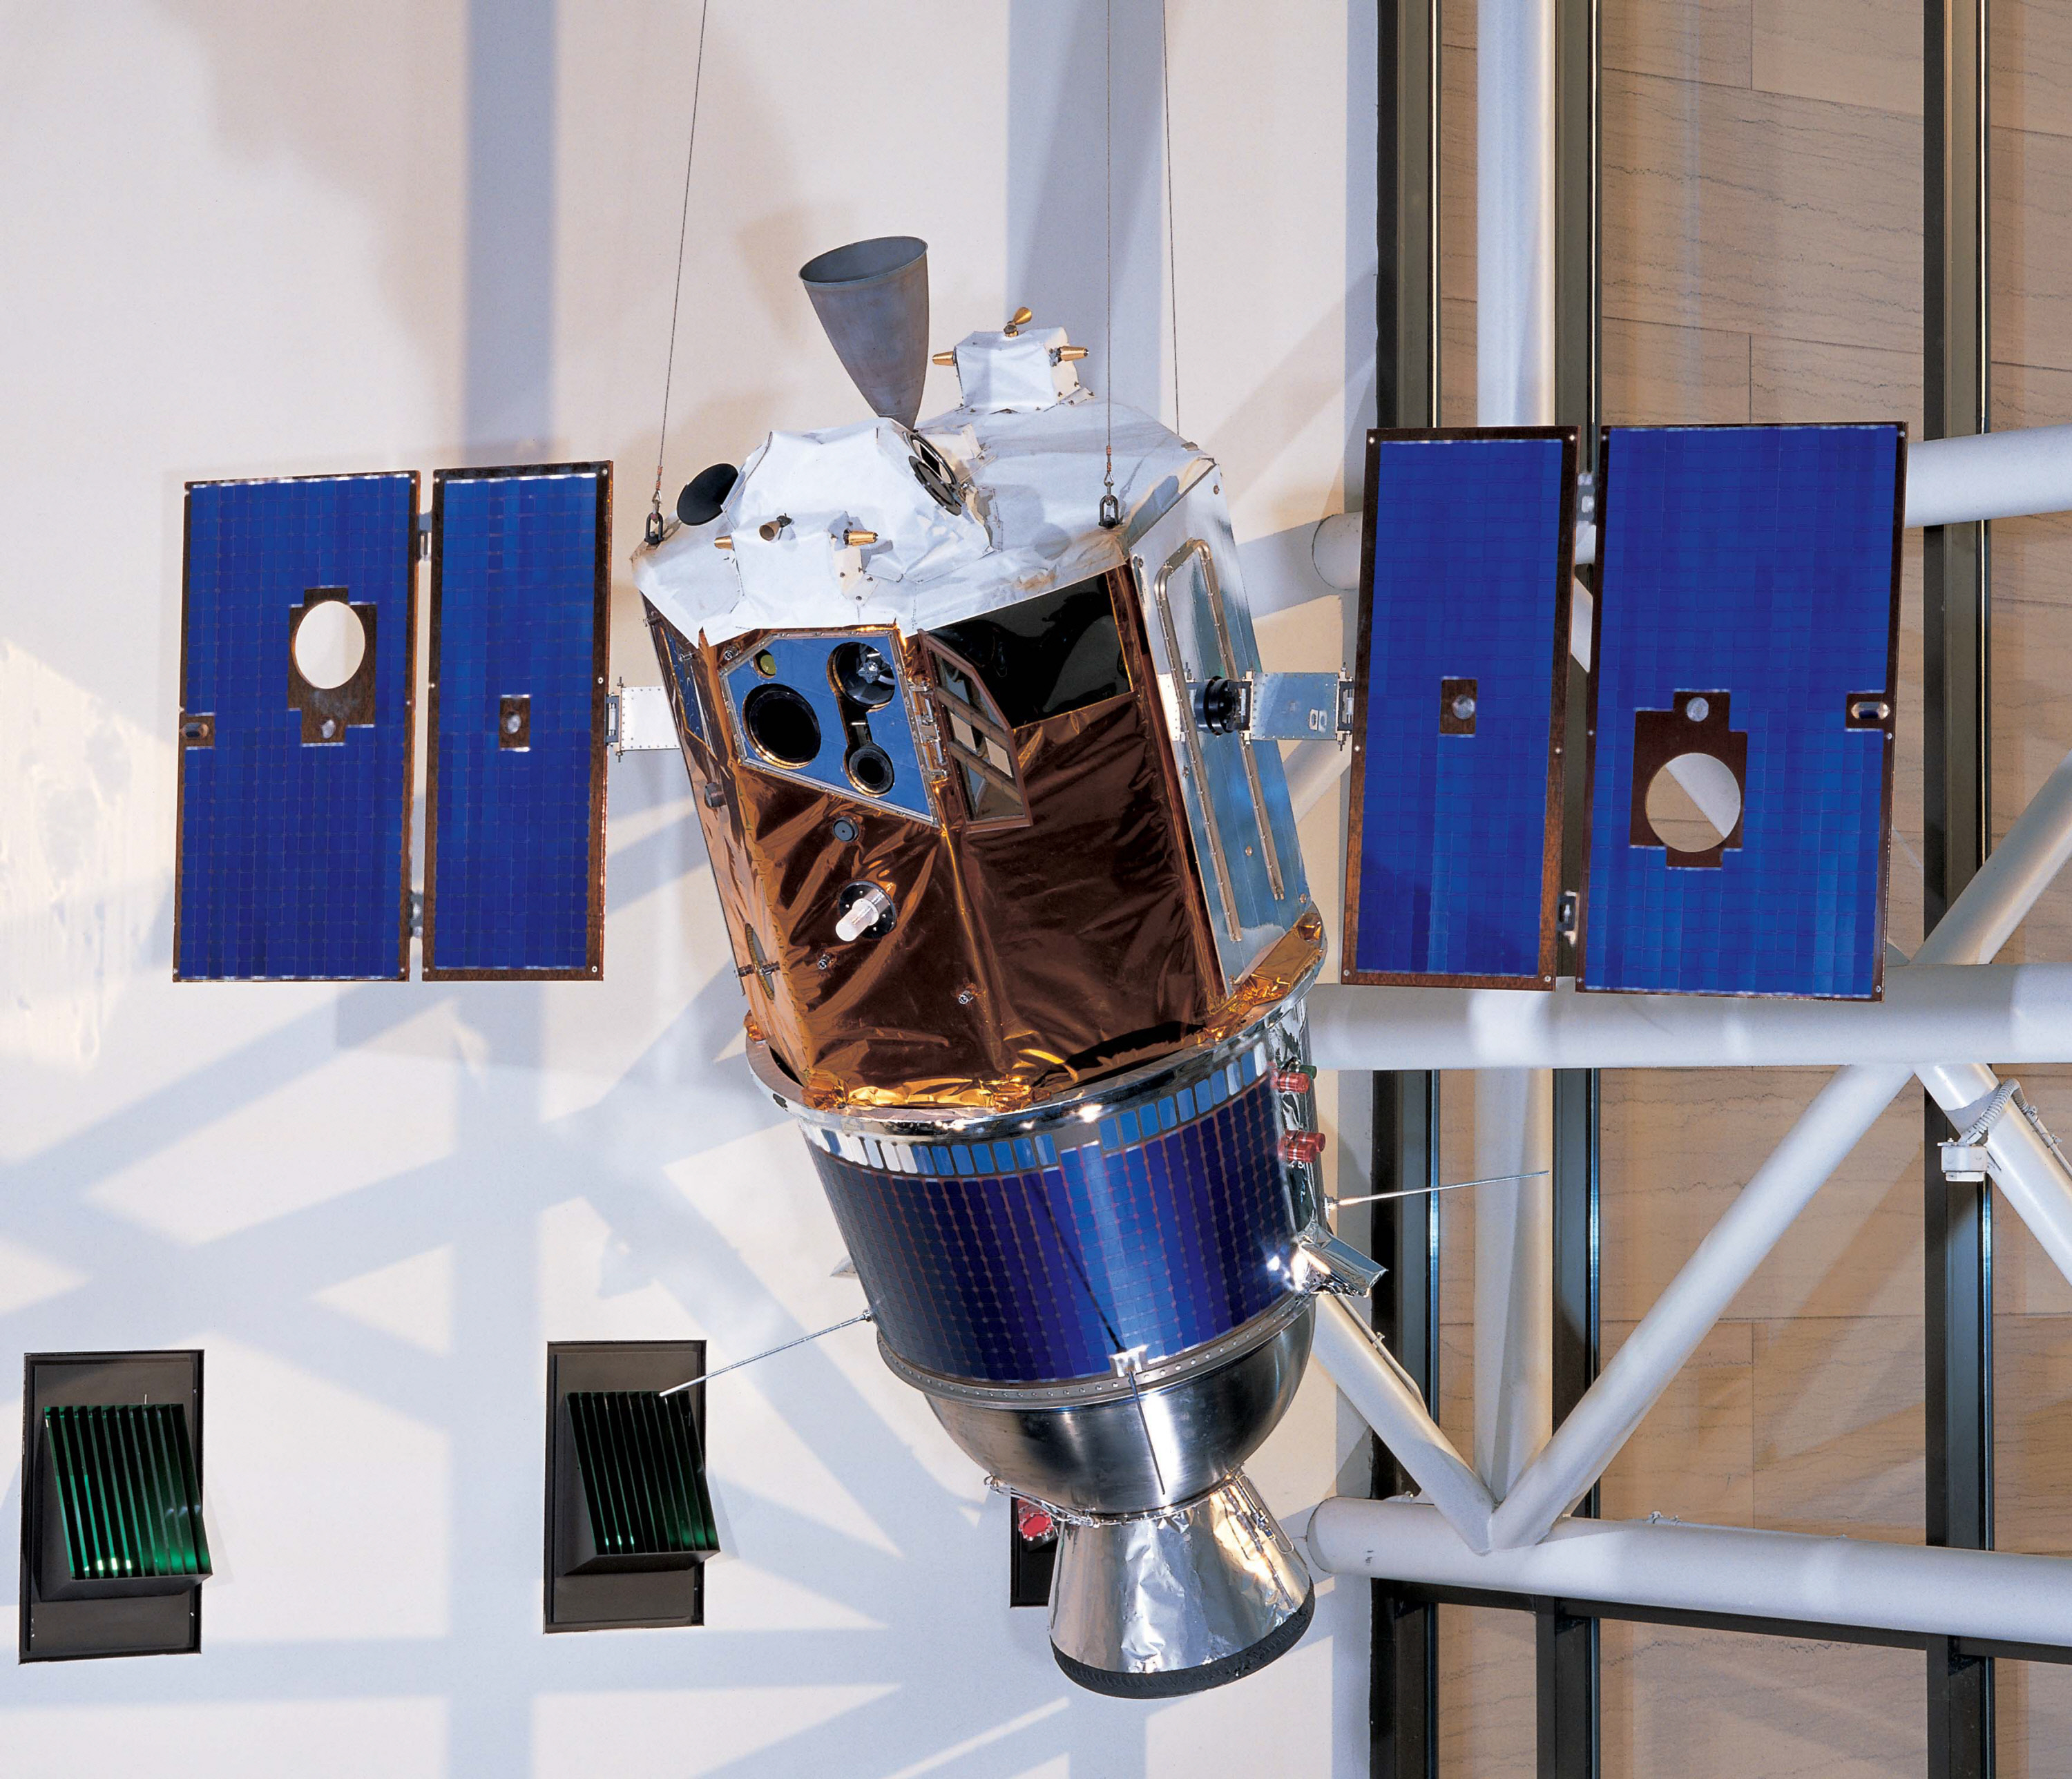 Image of : Interstage Adapter, Engineering Model, Clementine